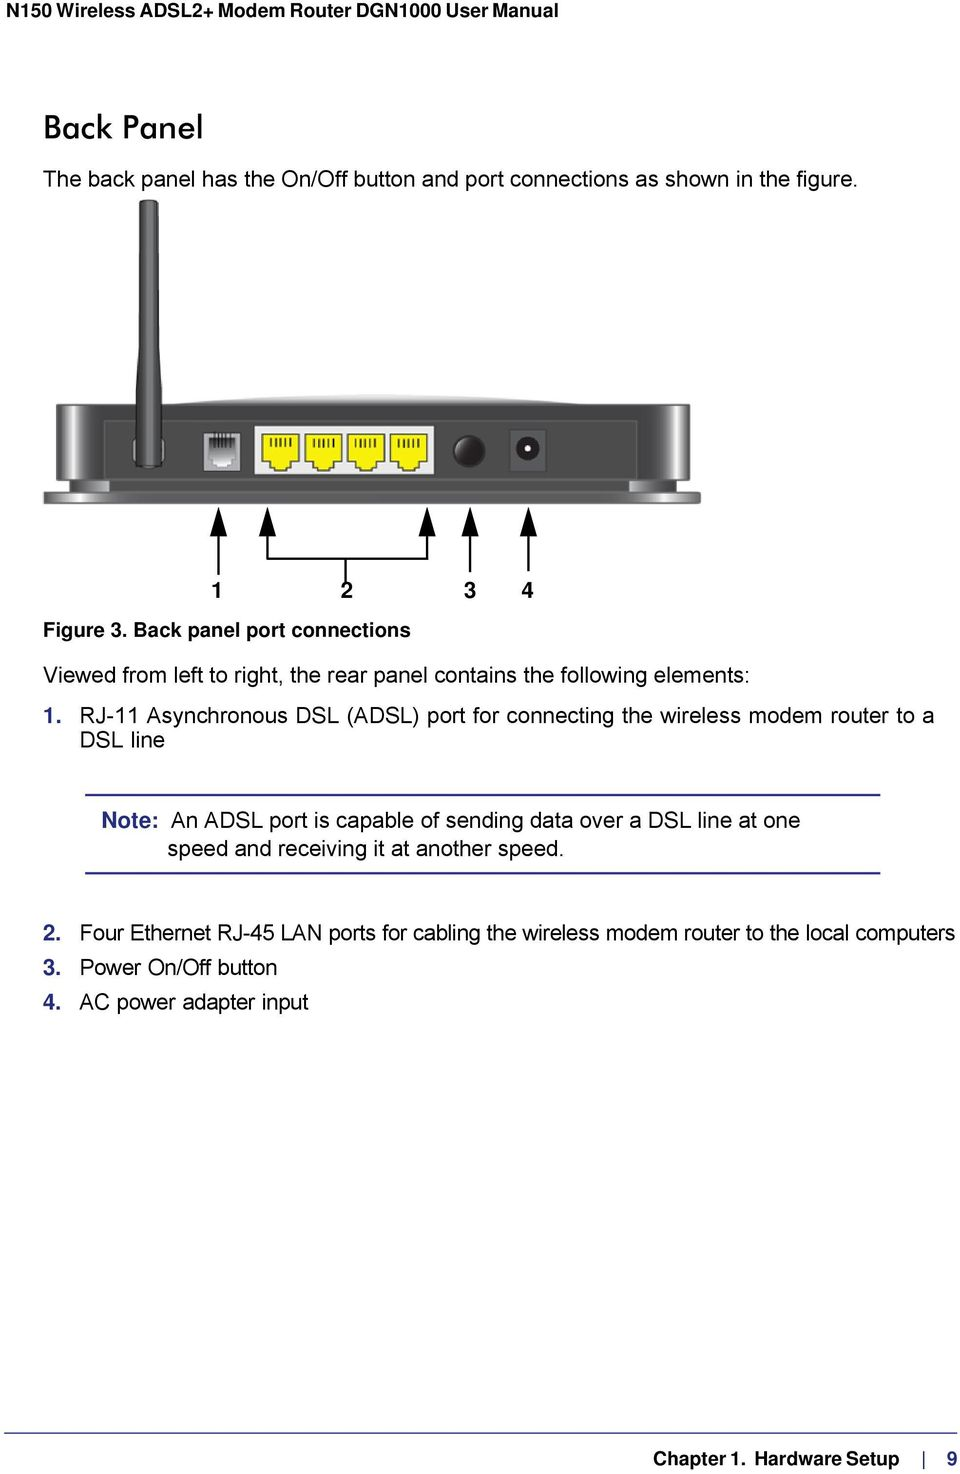 N150 Wireless Adsl2 Modem Router Dgn Pdf Diagram Rj 11 Asynchronous Dsl Adsl Port For Connecting The To